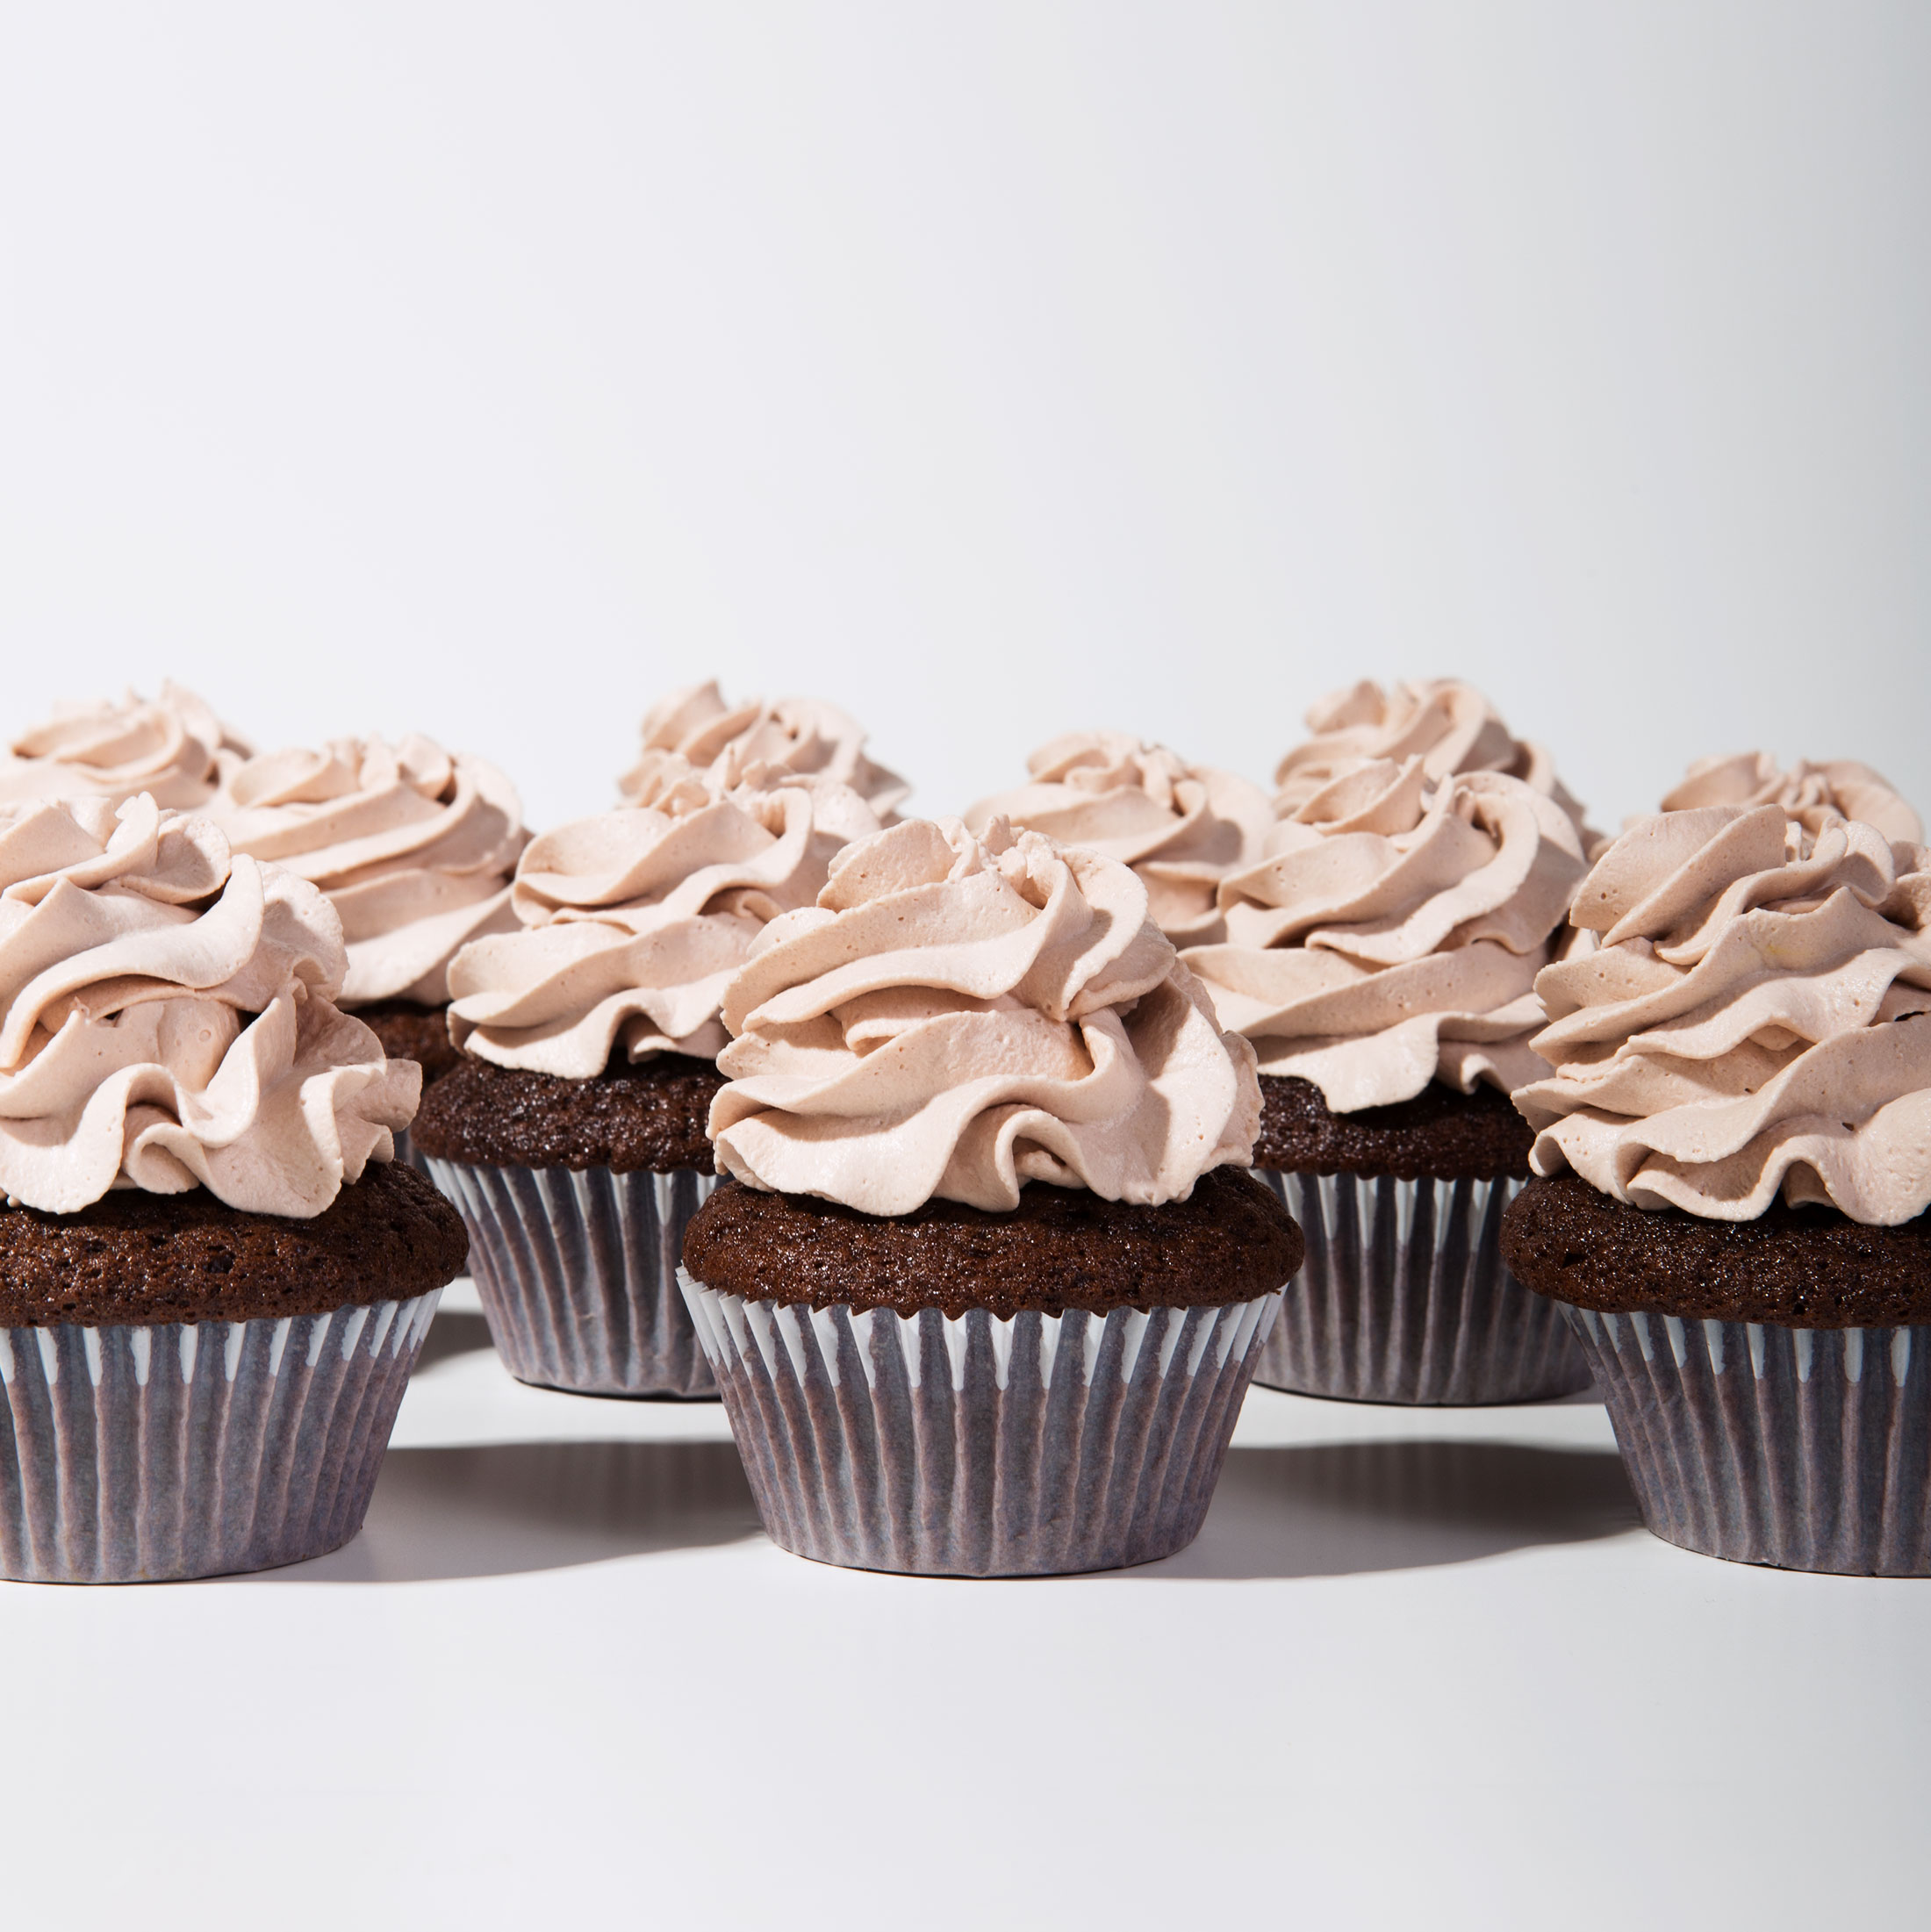 Mexican Chocolate Milk Cupcakes with a Whipped Chocolate Milk Topping